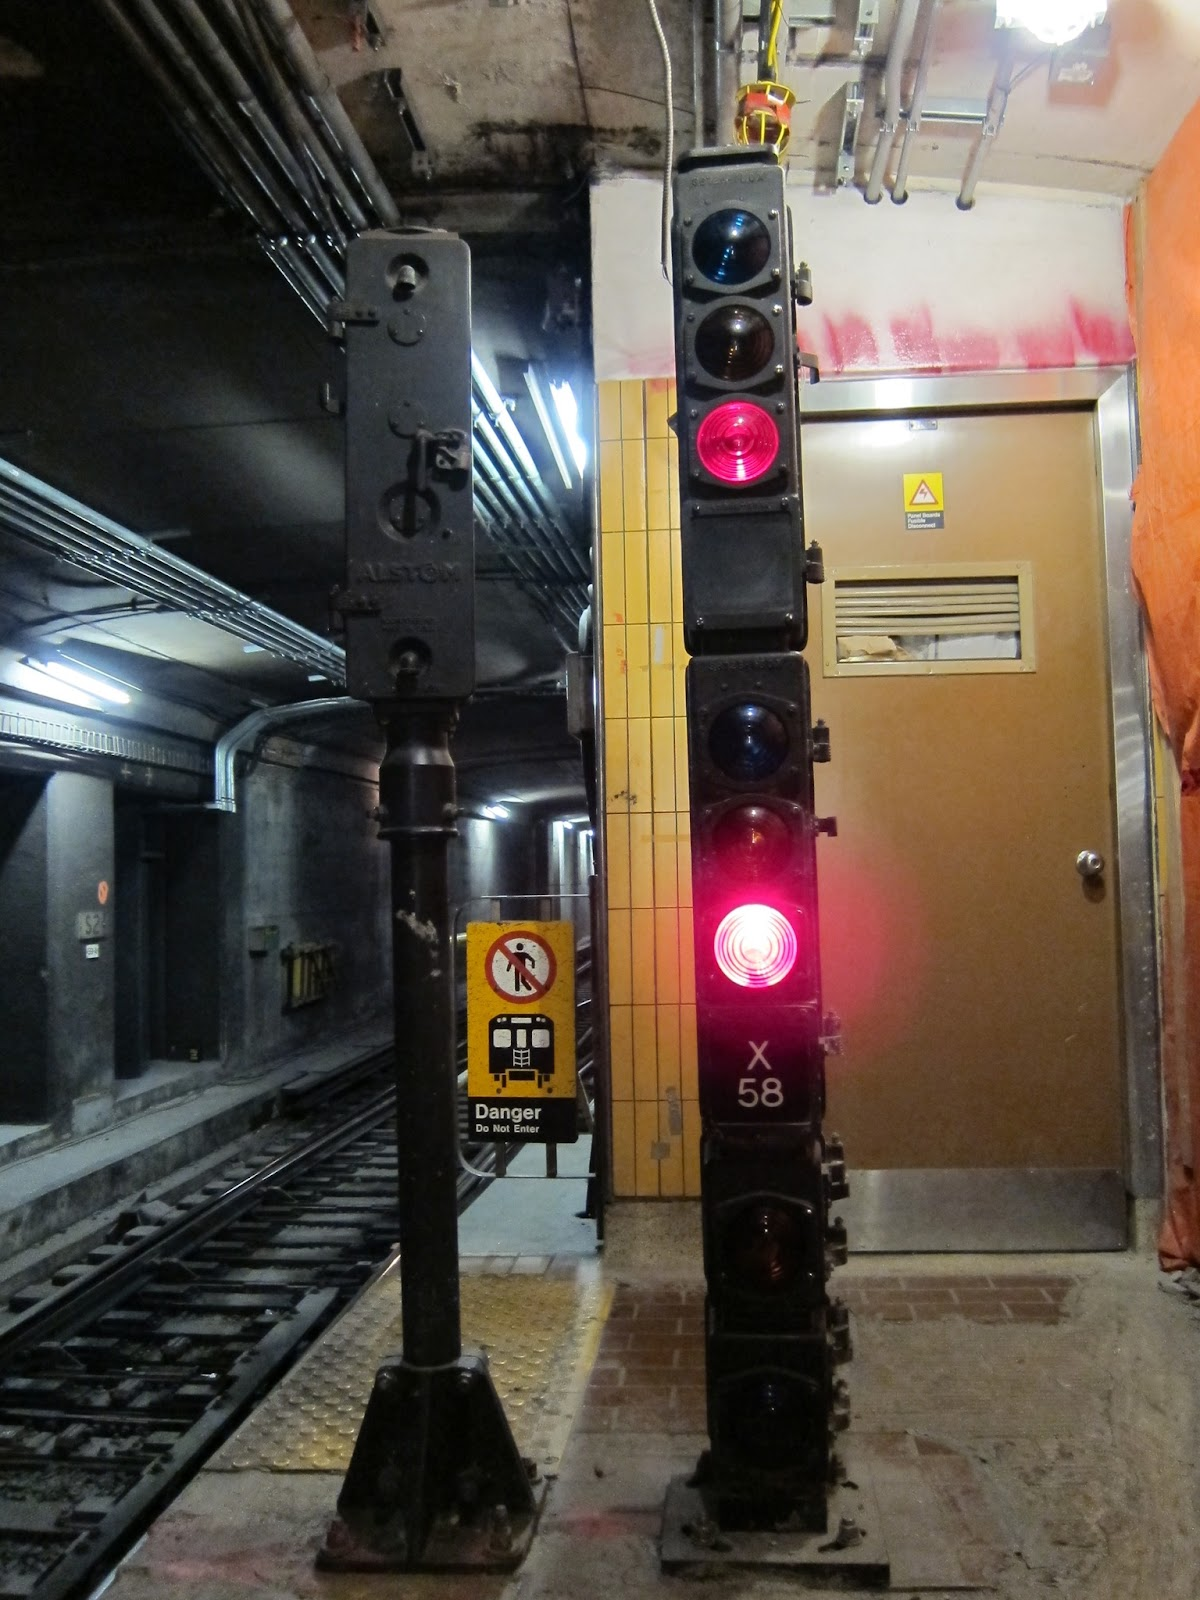 Union station interlocking signal